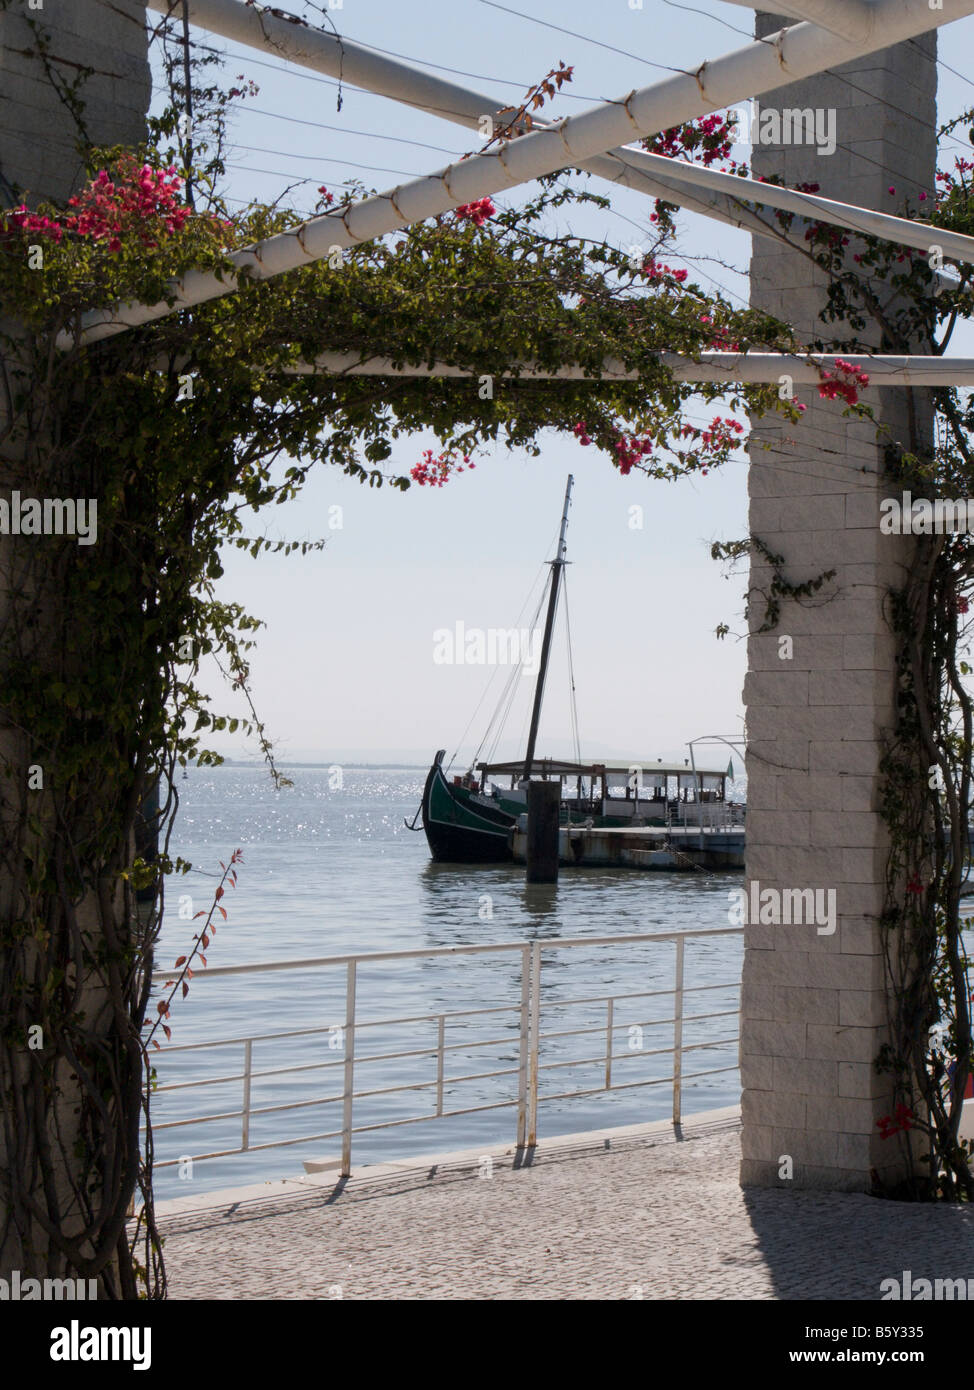 Traditional river boat at Passeio das Tagides seen through a whitewashed pergola with pink flowers, Oriente, Lisbon, - Stock Image